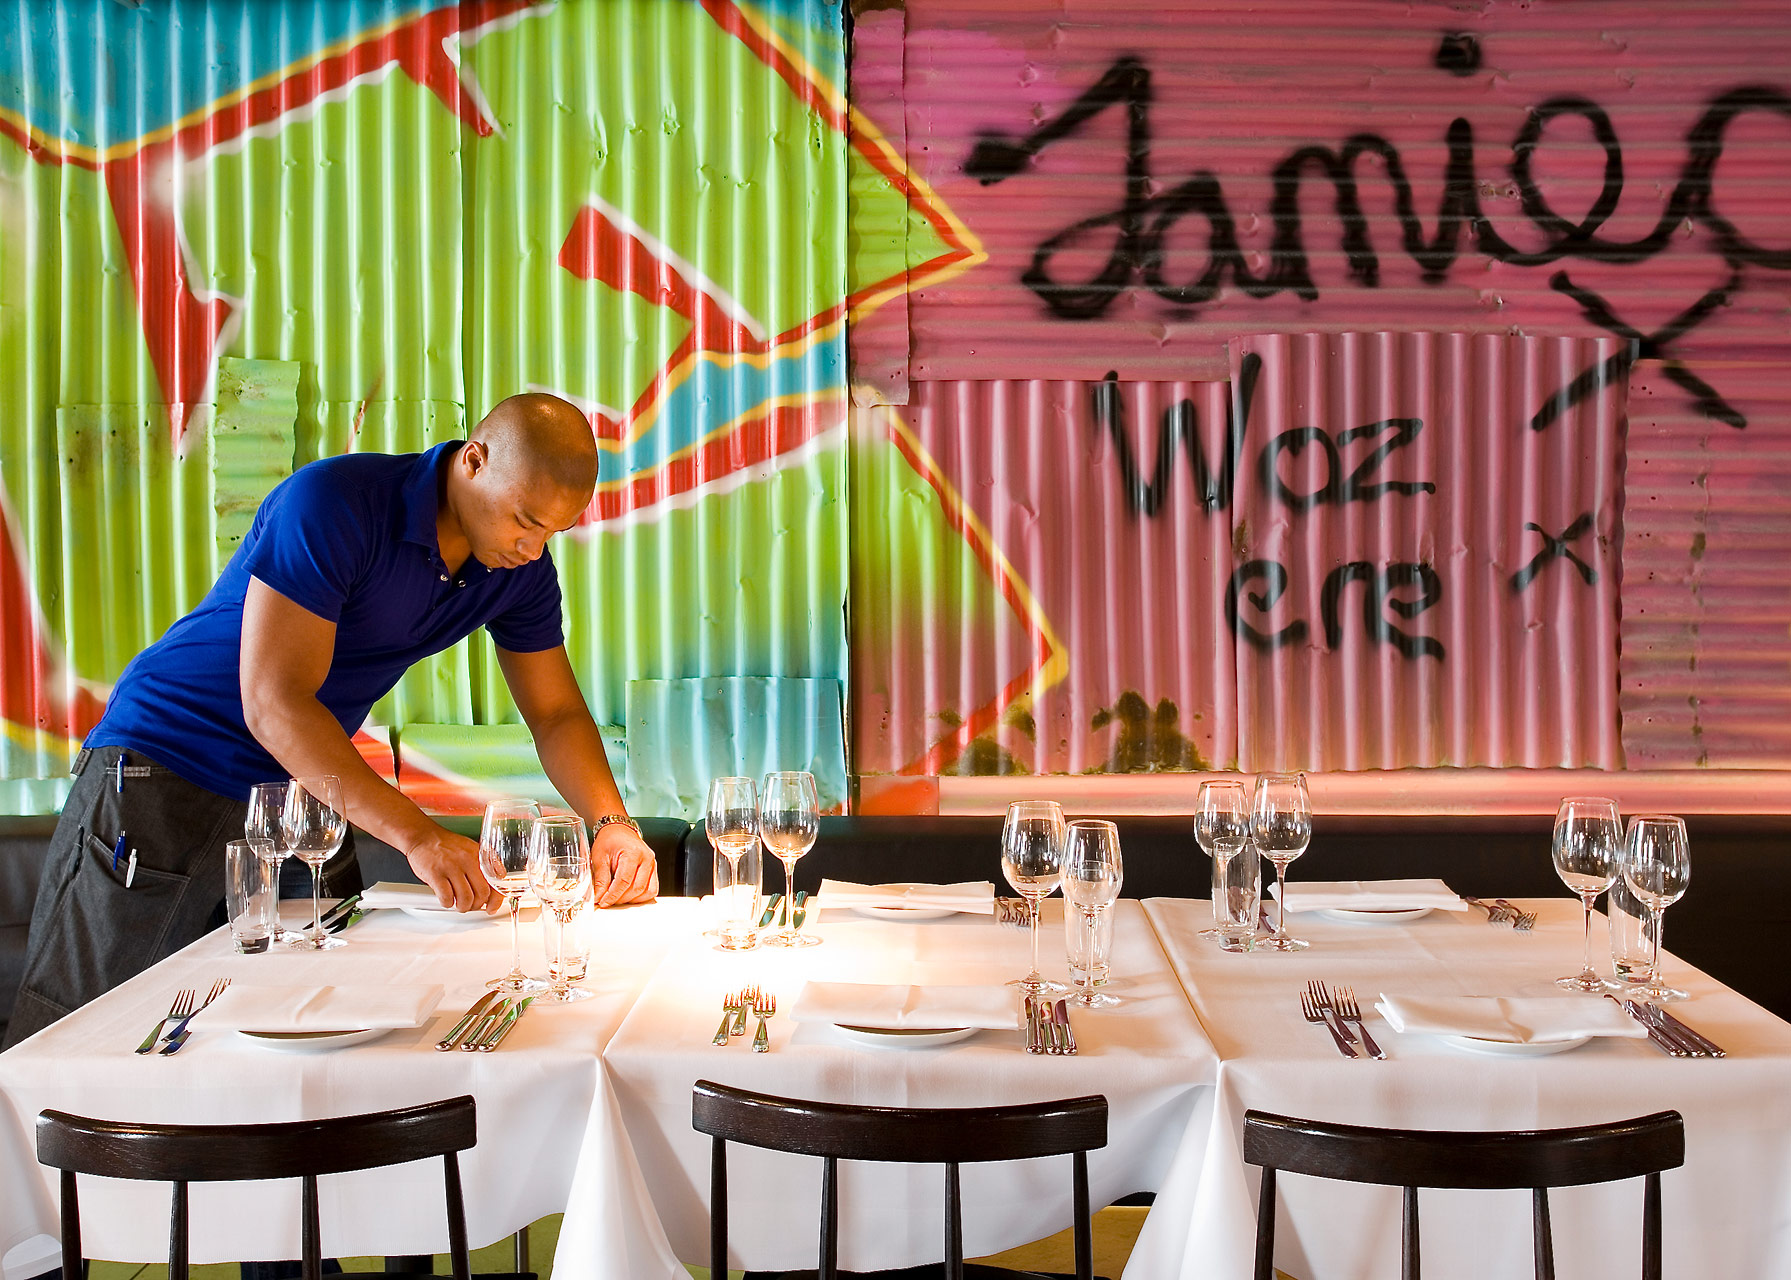 Jamie Oliver's Fifteen, Amsterdam